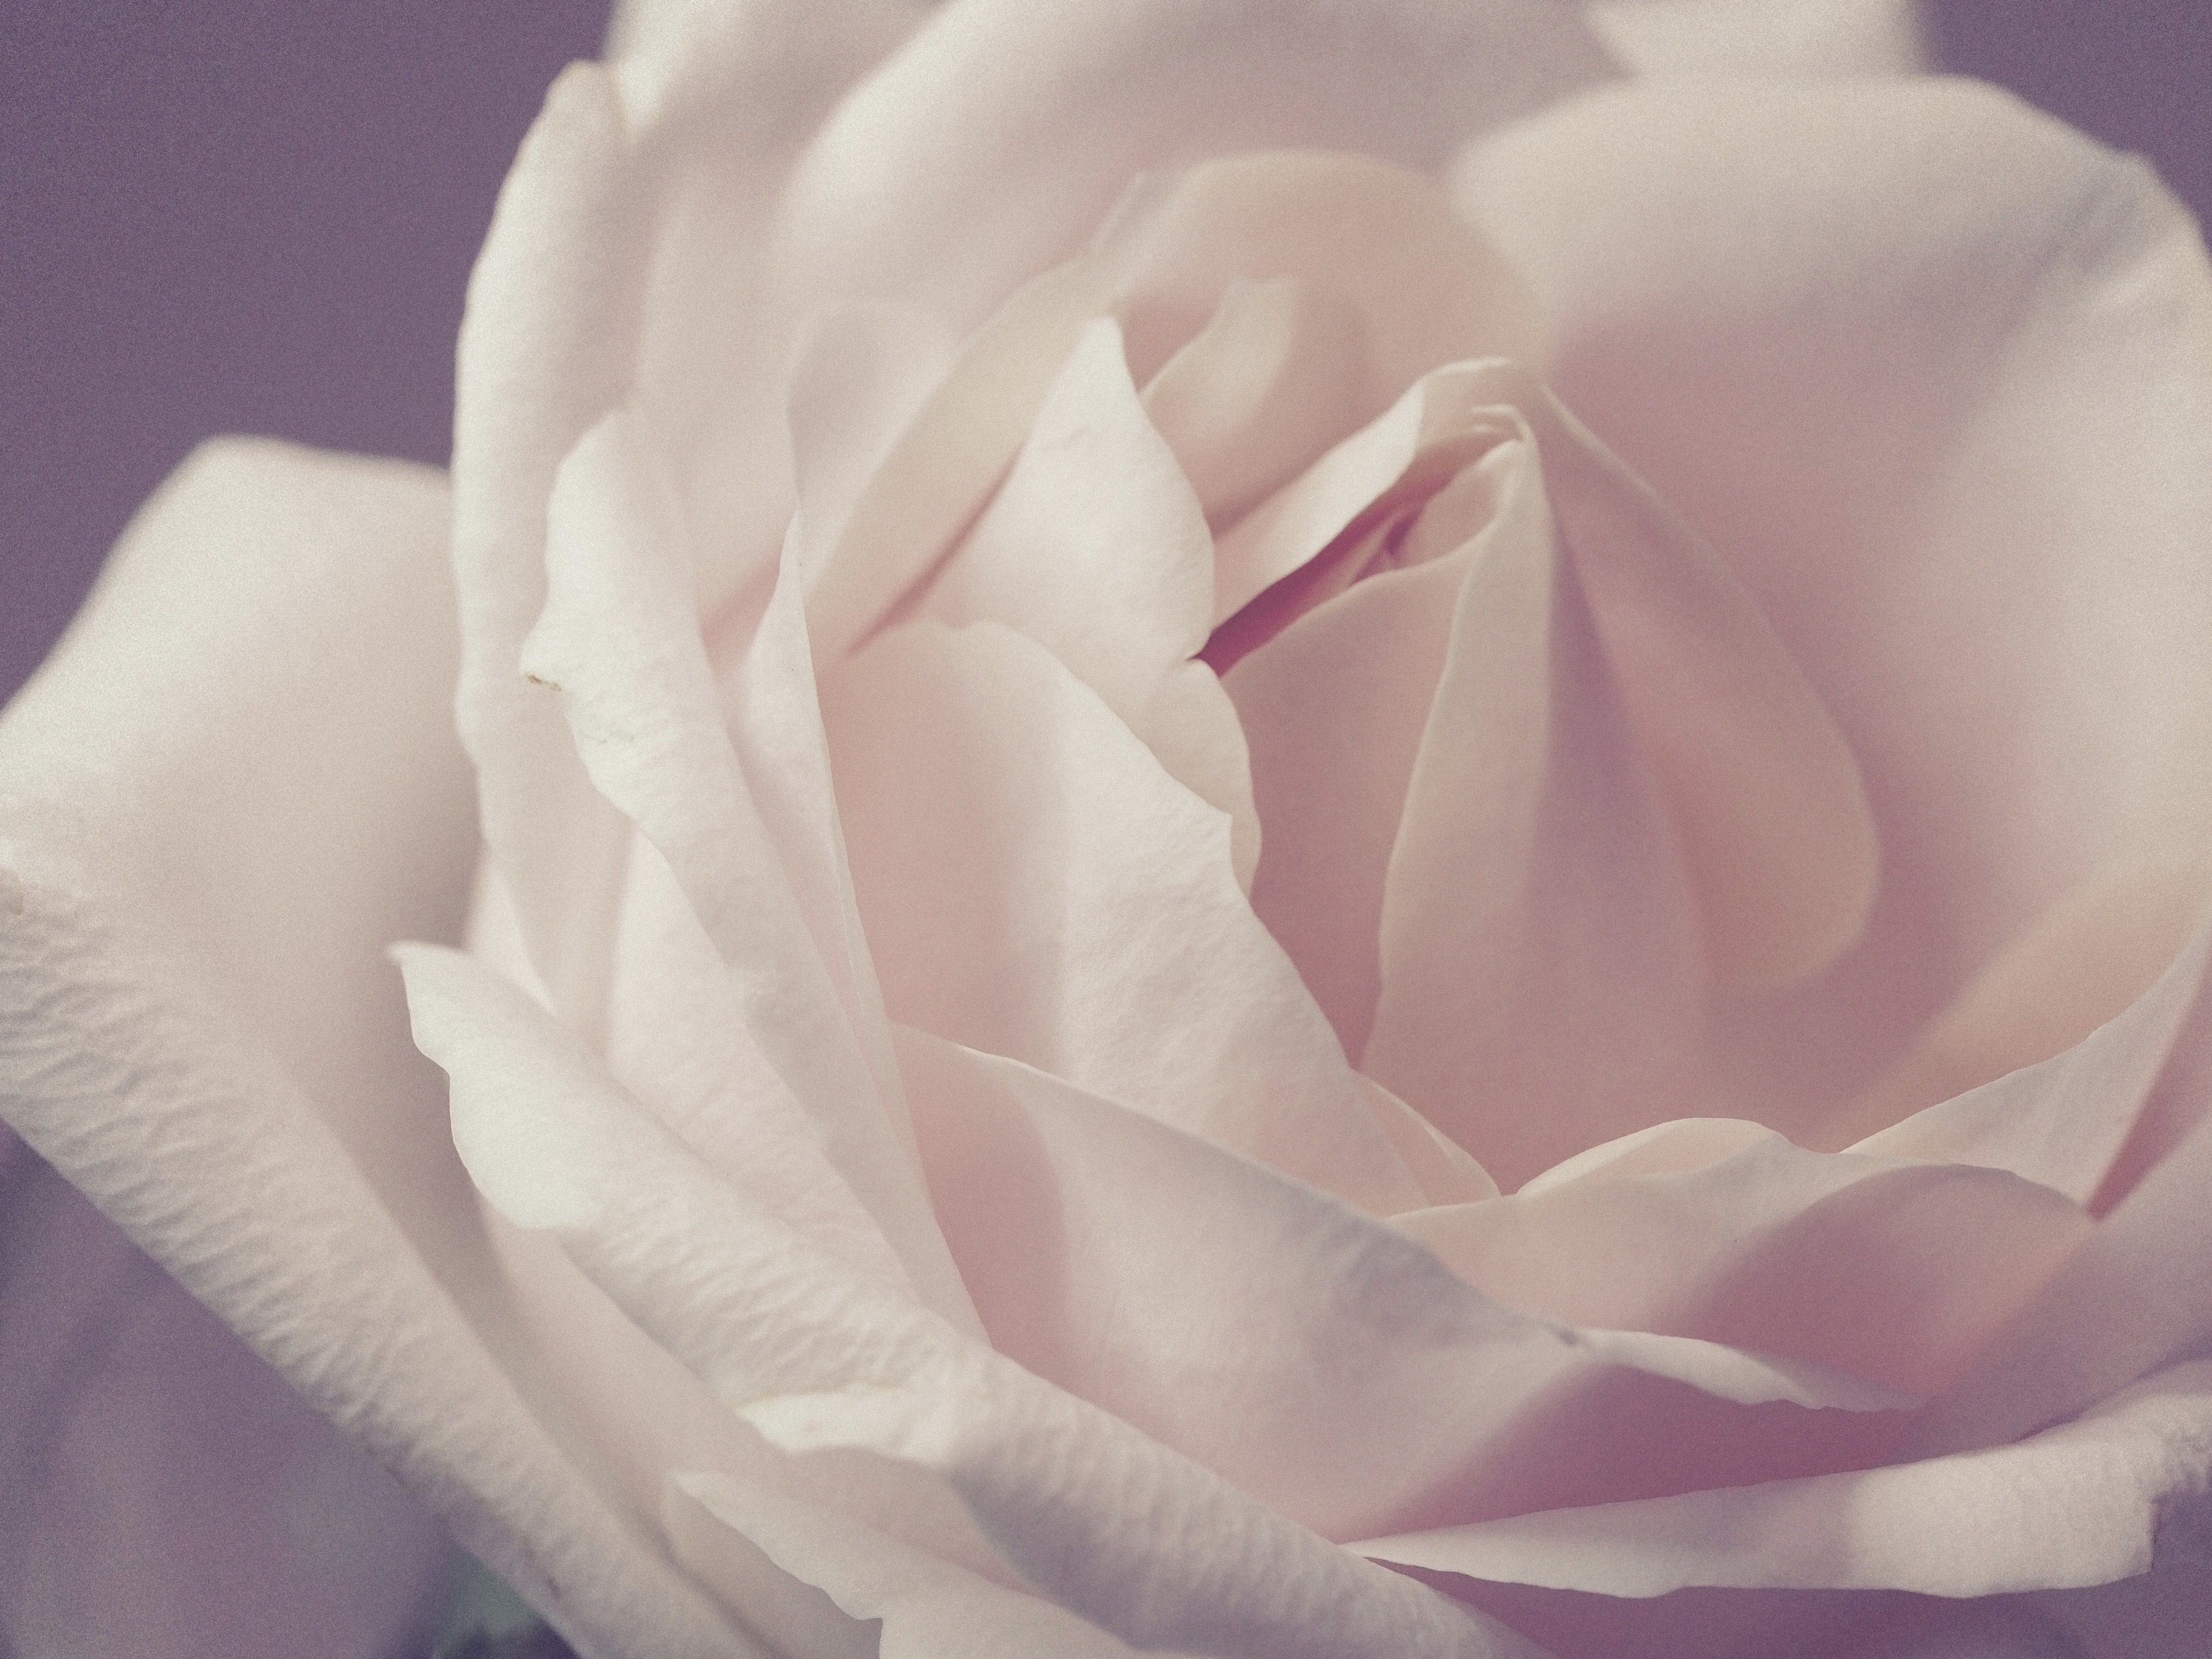 New Apple Wallpapers Iphone 7 Macro Photography Of Pale Pink Rose 183 Free Stock Photo